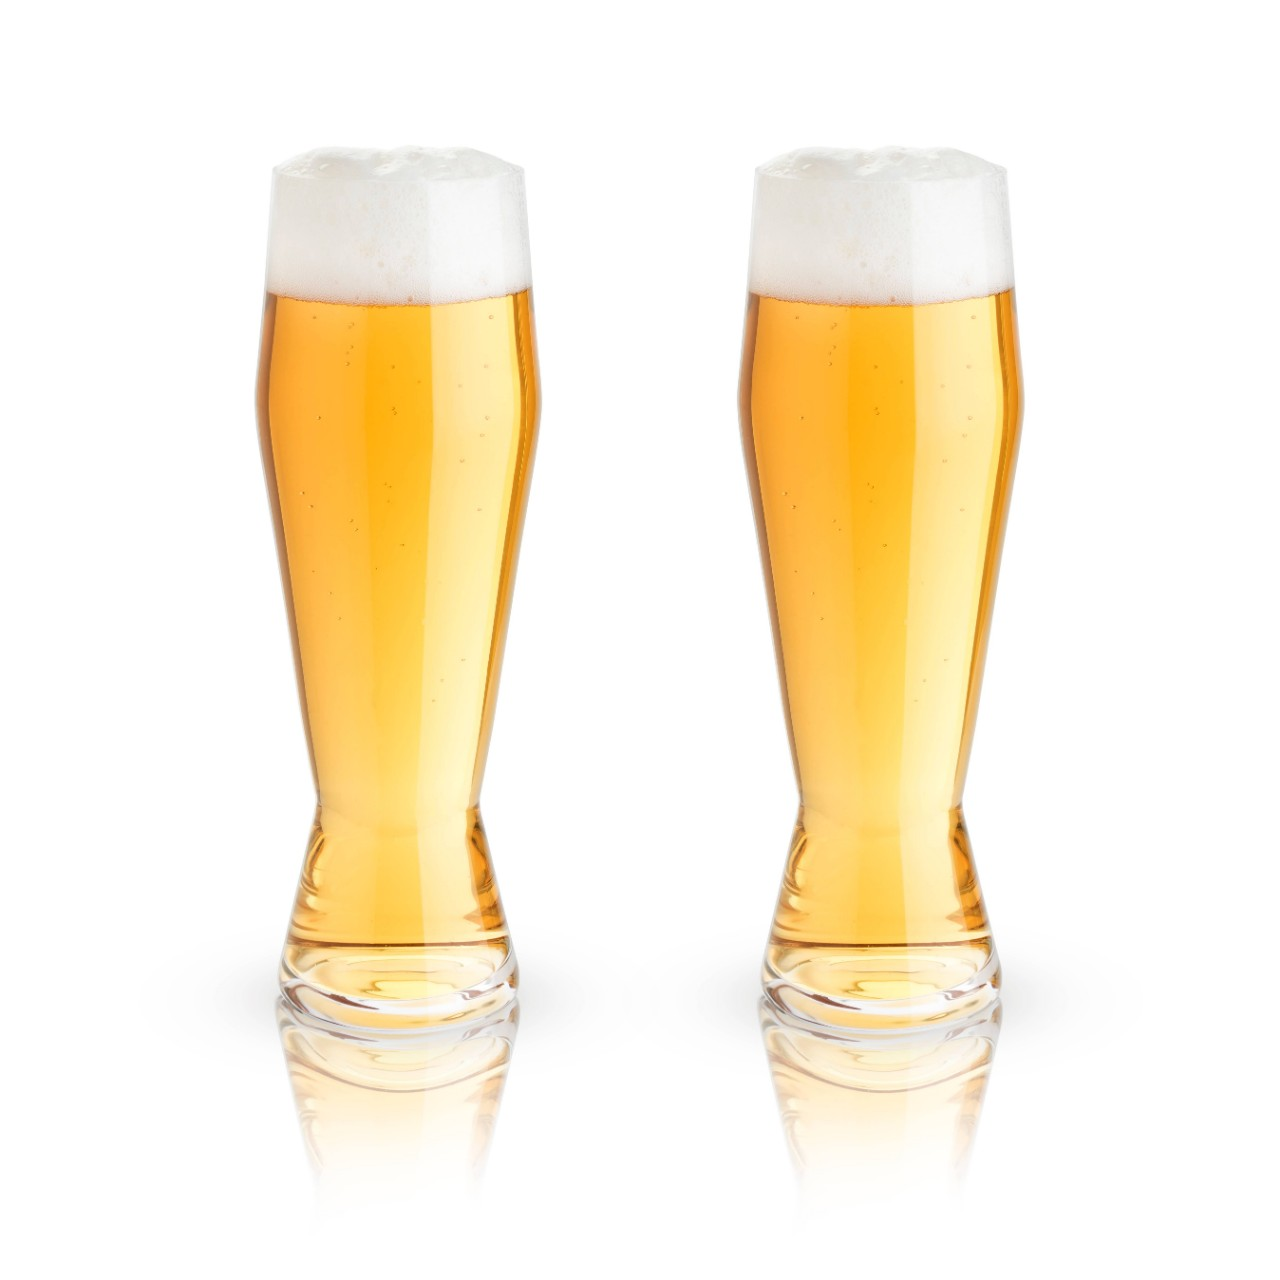 Crystal Weizen Glasses (set of 2)